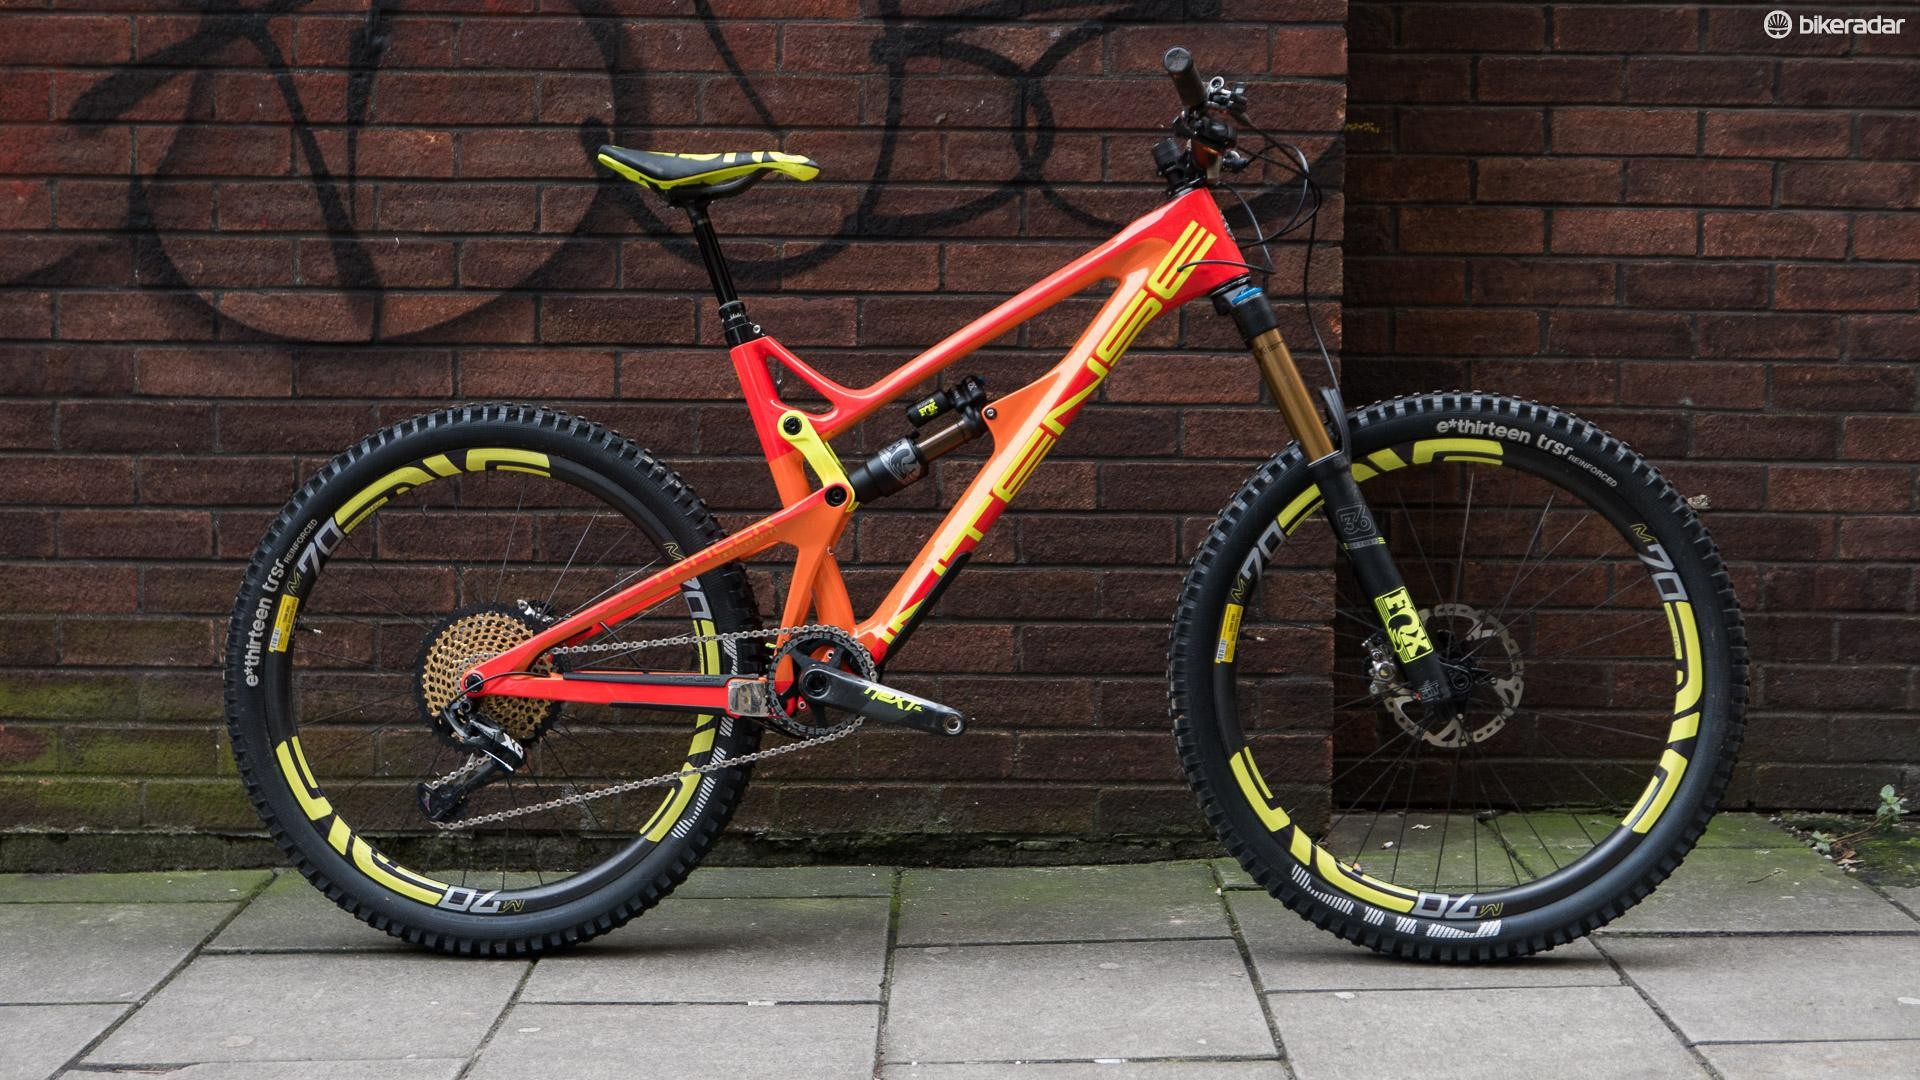 40810b71a0a The Intense Tracer 275C Factory Build is one shiny enduro bike